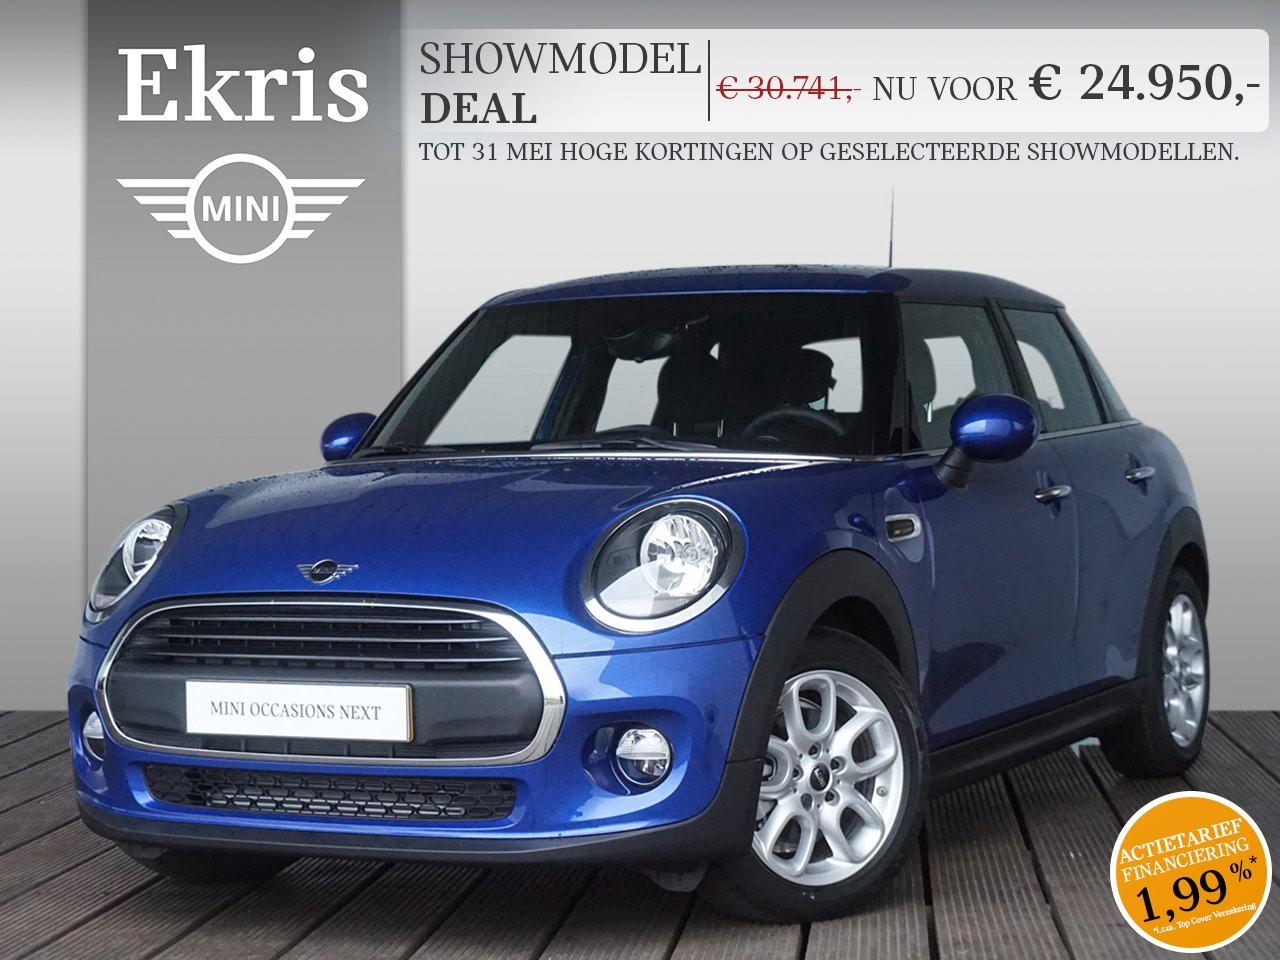 Mini 5-deurs One pepper + business + sportstoelen - showmodel deal